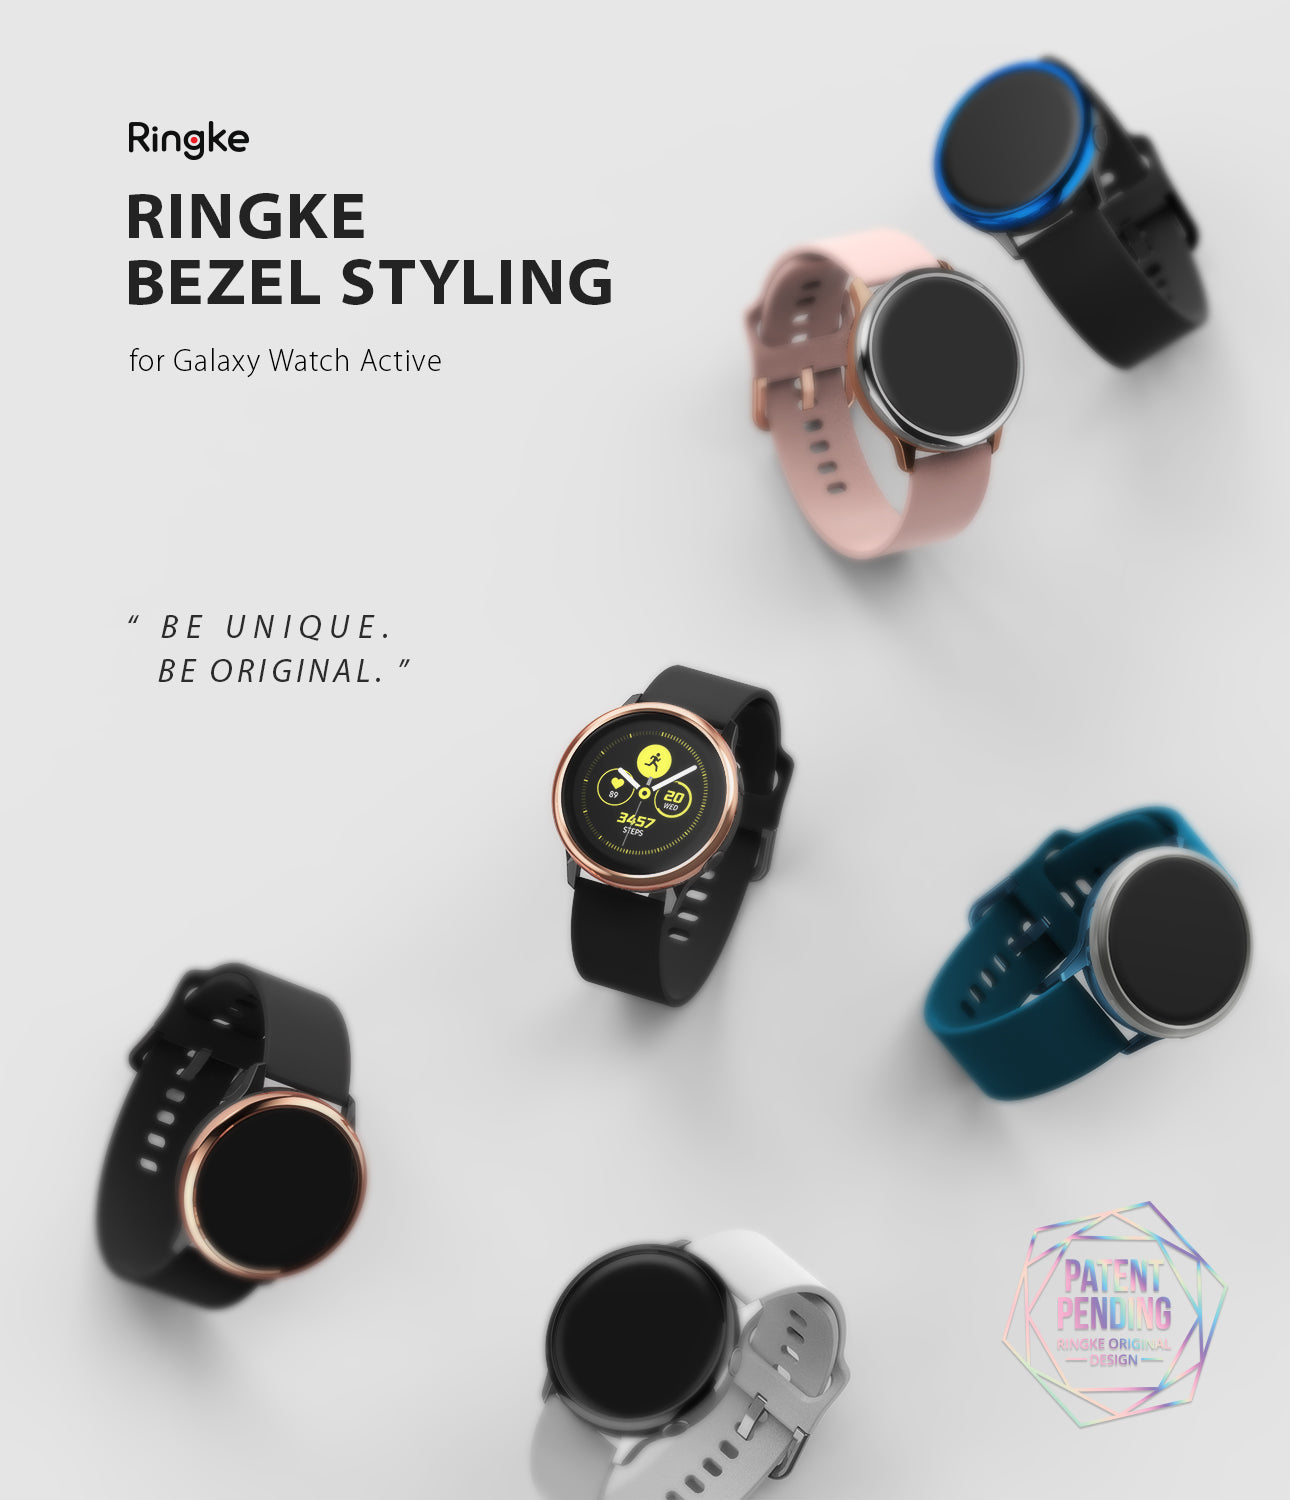 ringke bezel styling for galaxy watch active